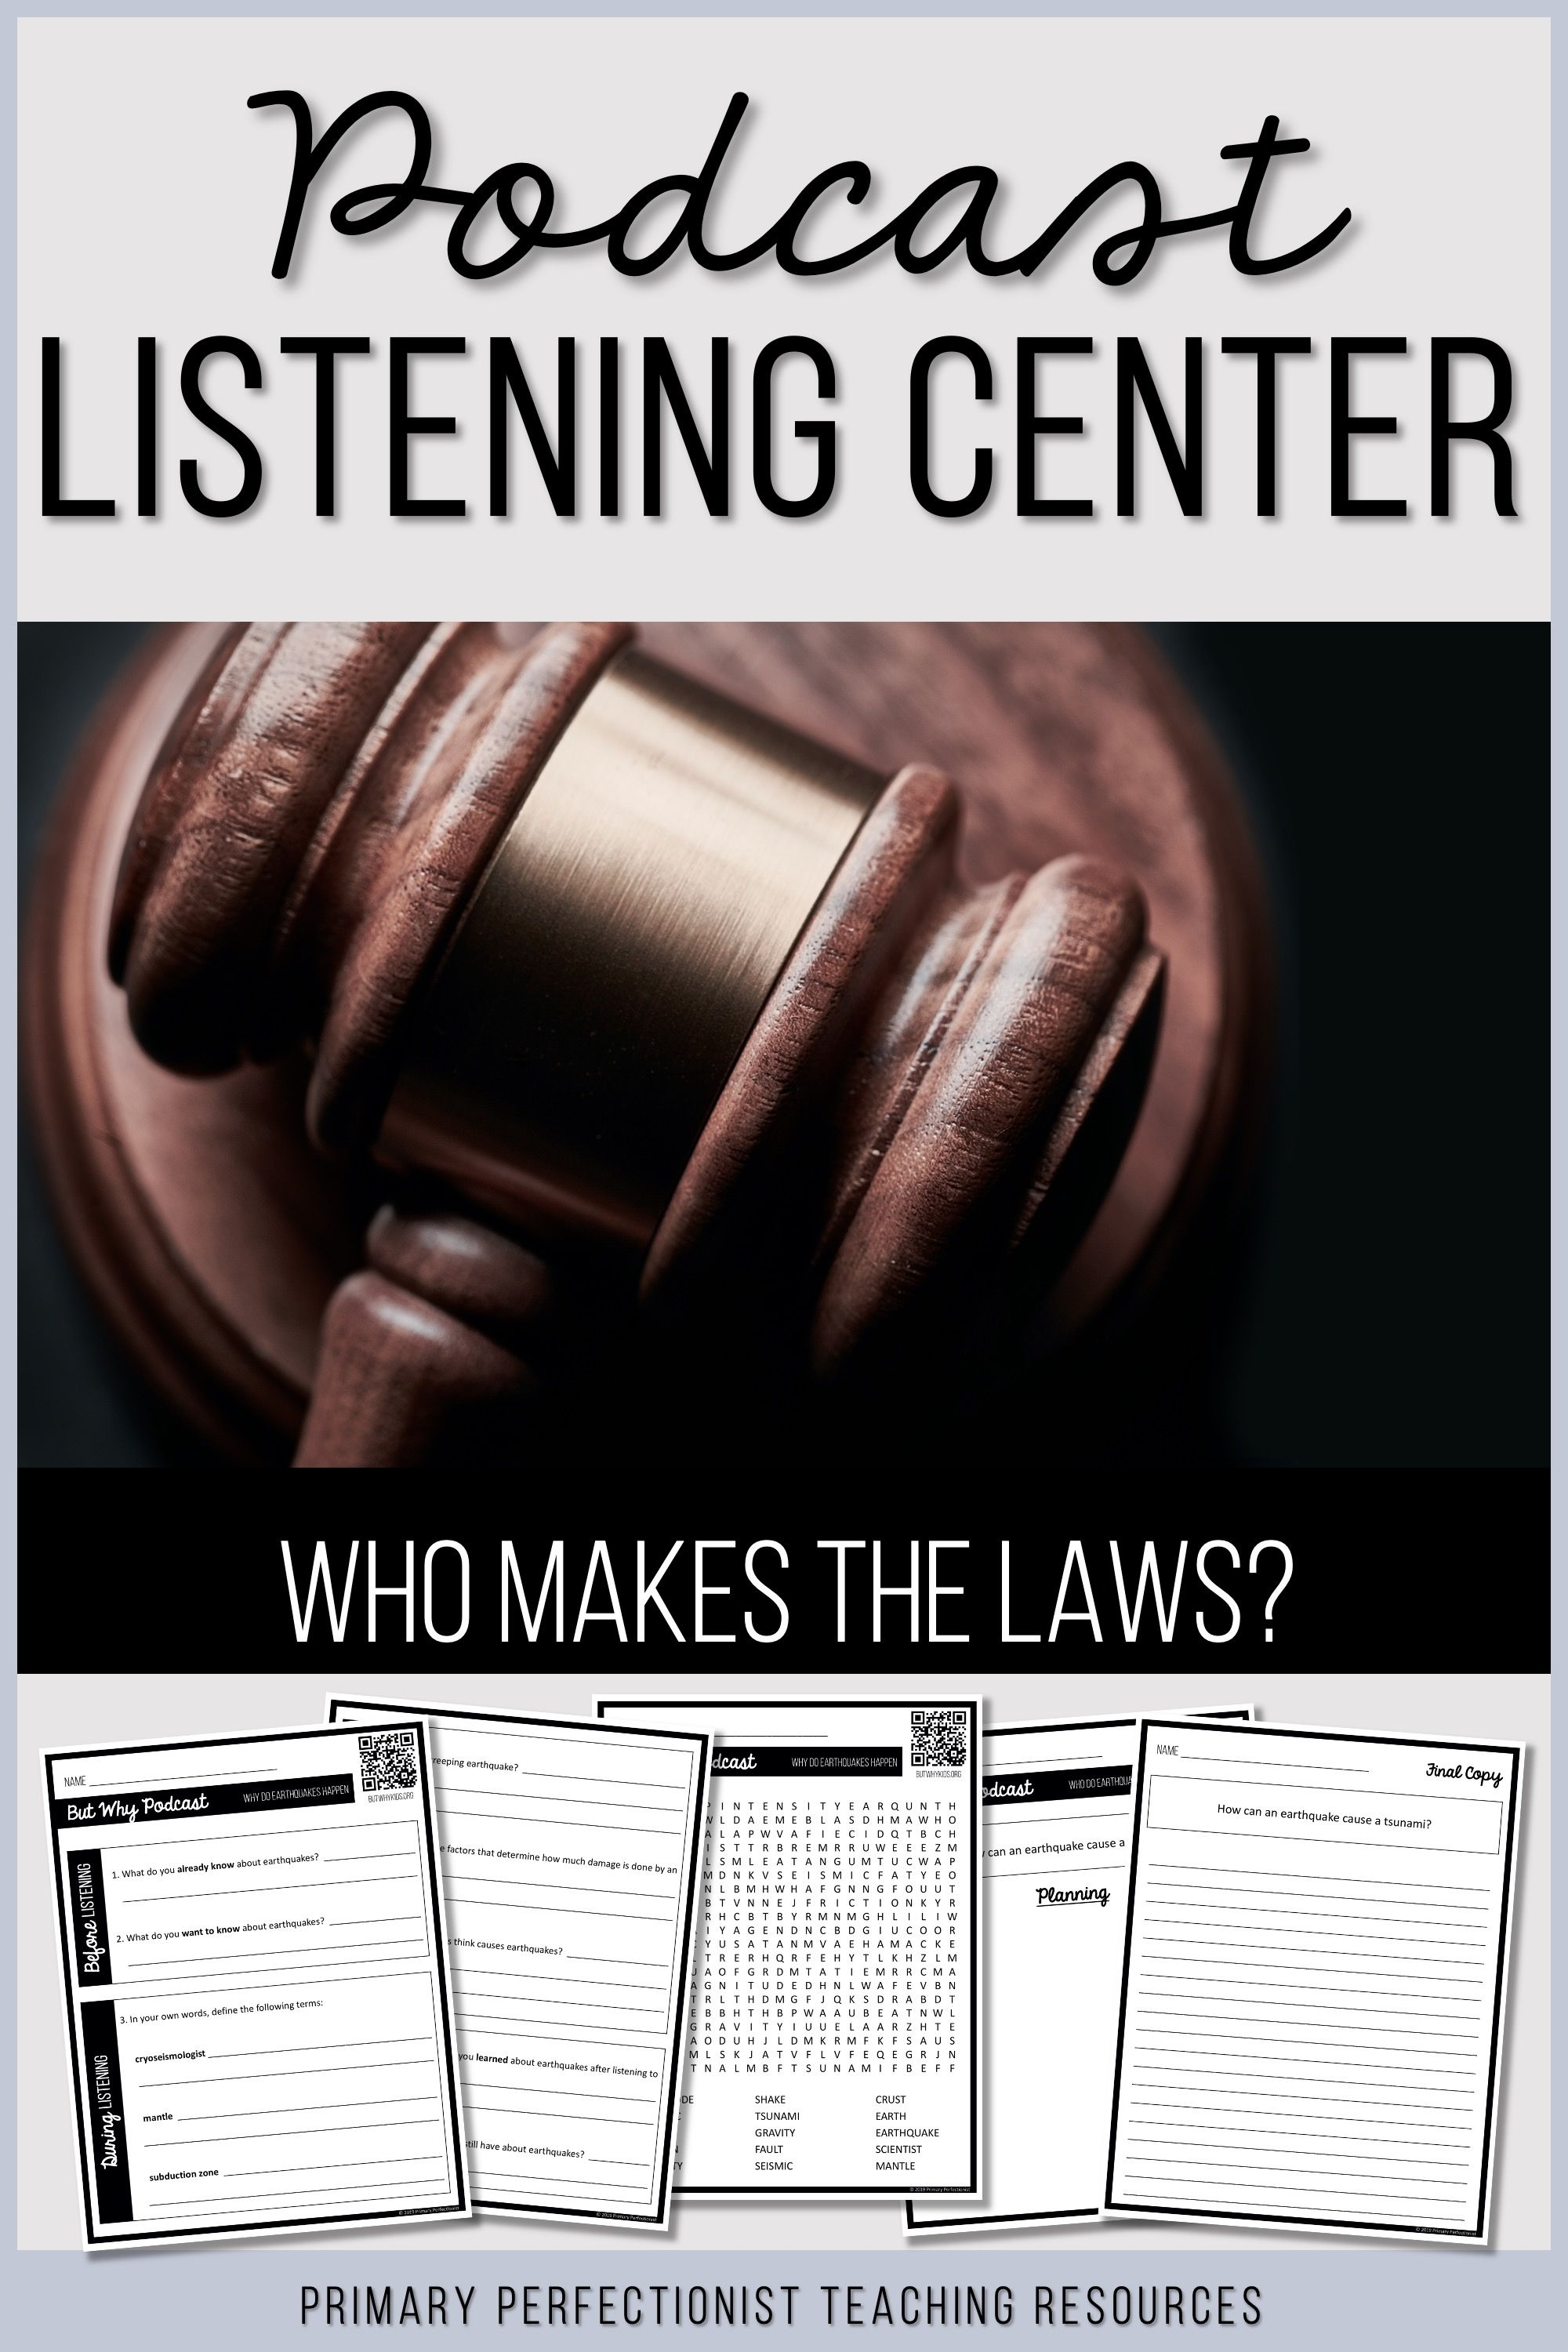 Podcast Listening Center Comprehension Activities